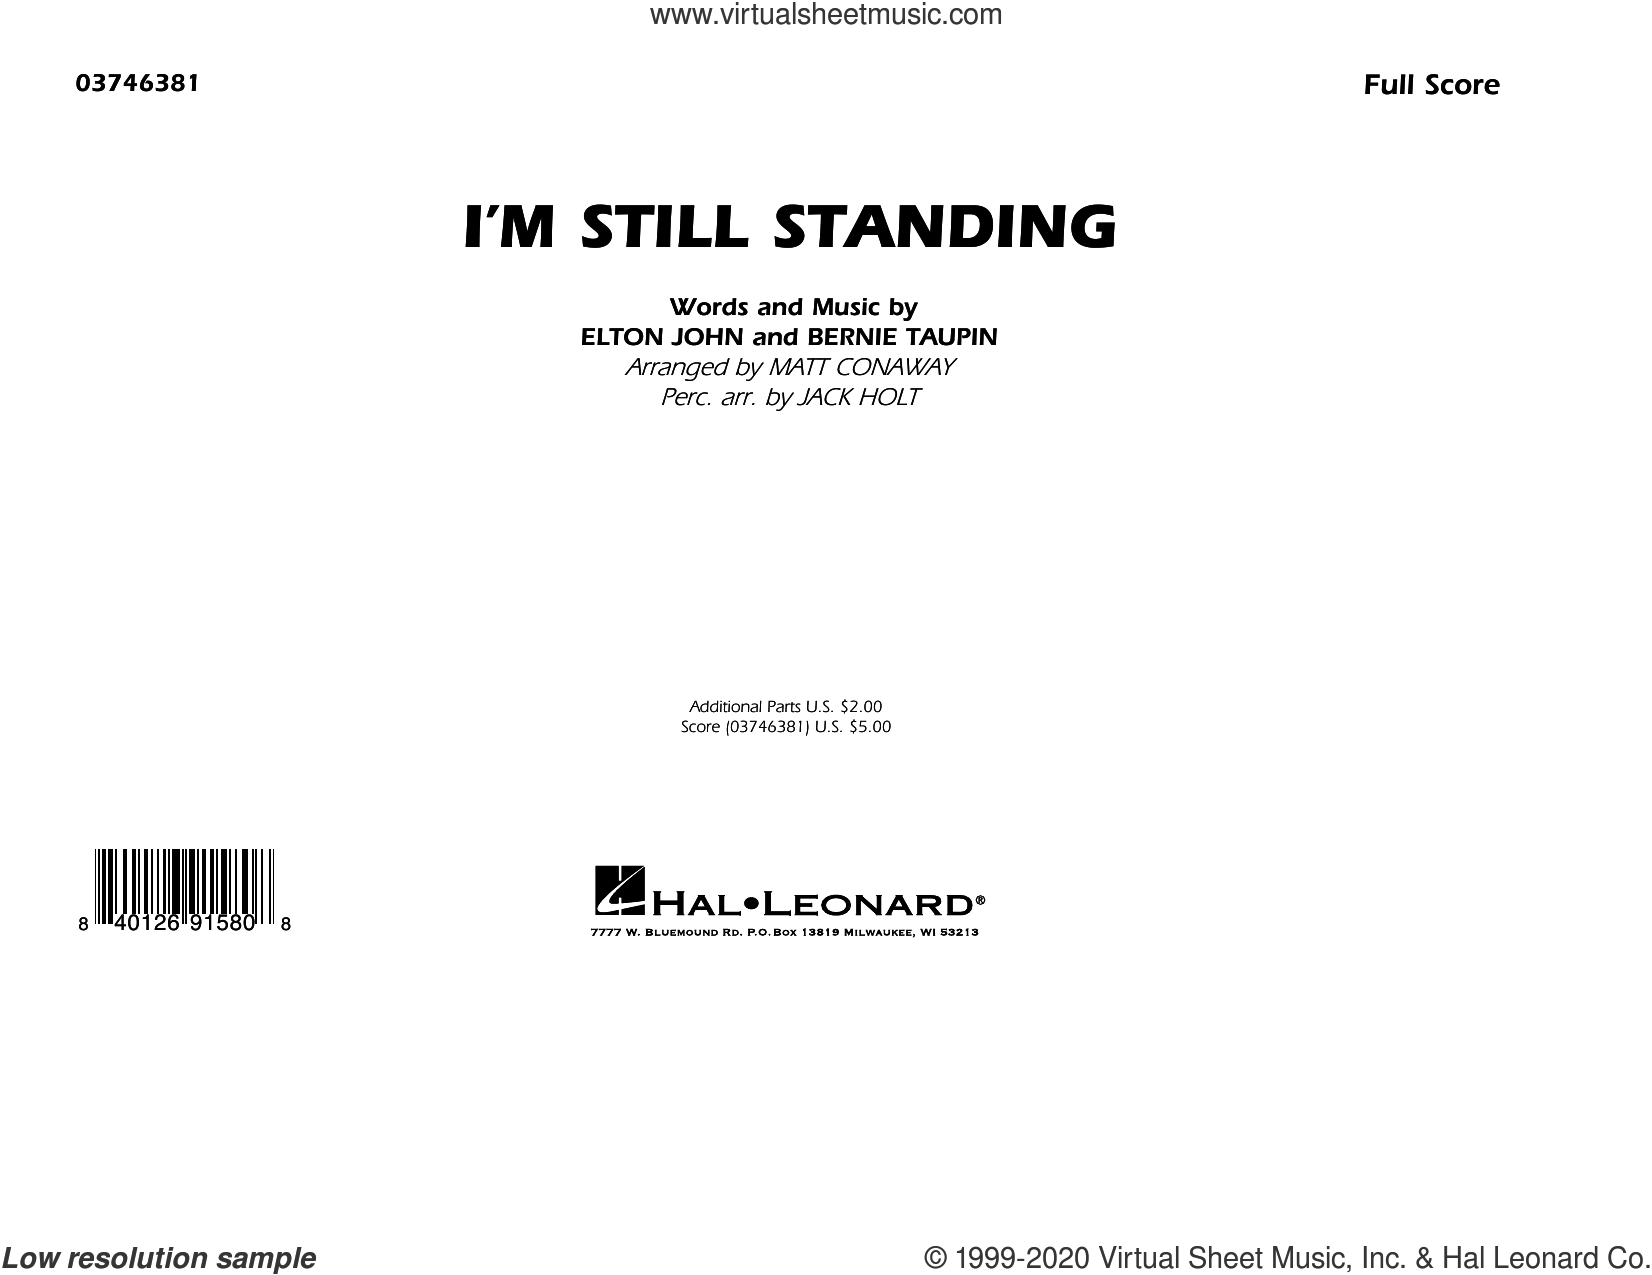 I'm Still Standing (arr. Matt Conaway and Jack Holt) (COMPLETE) sheet music for marching band by Elton John, Bernie Taupin, Jack Holt and Matt Conaway, intermediate skill level